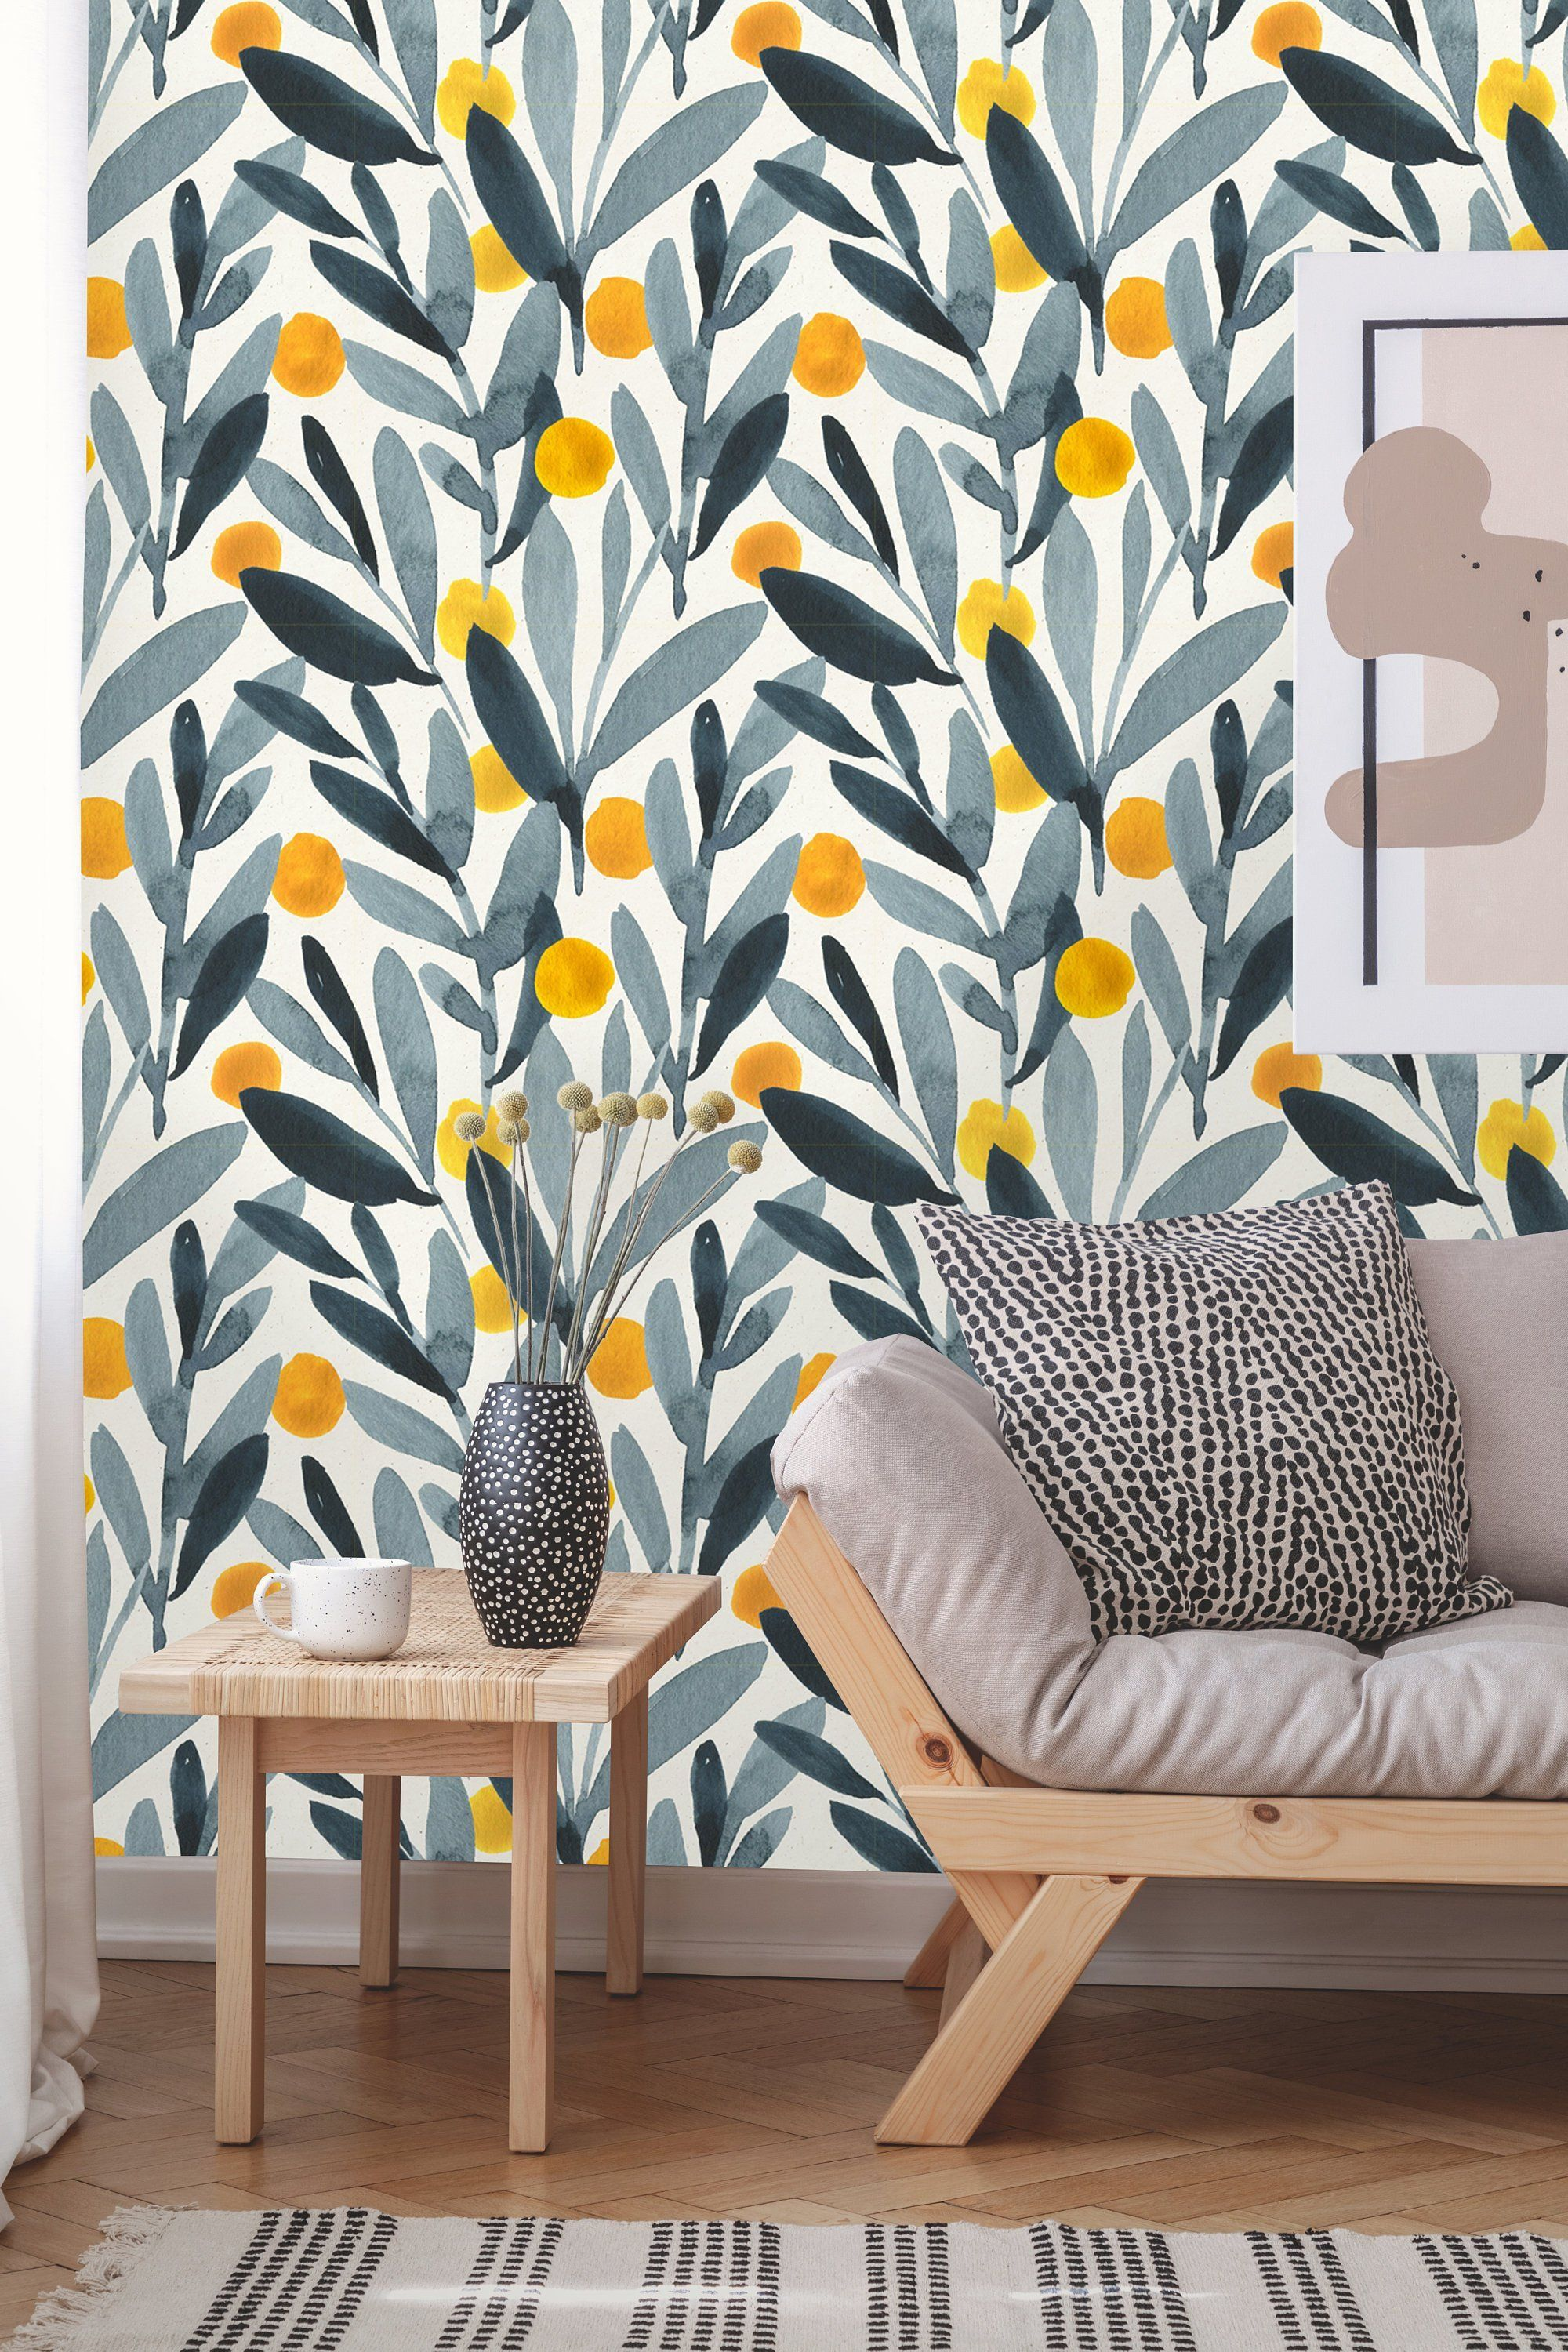 Removable Wallpaper Peel And Stick Leaves Wallpaper Self Etsy Removable Wallpaper Watercolor Wallpaper Wallpaper Accent Wall